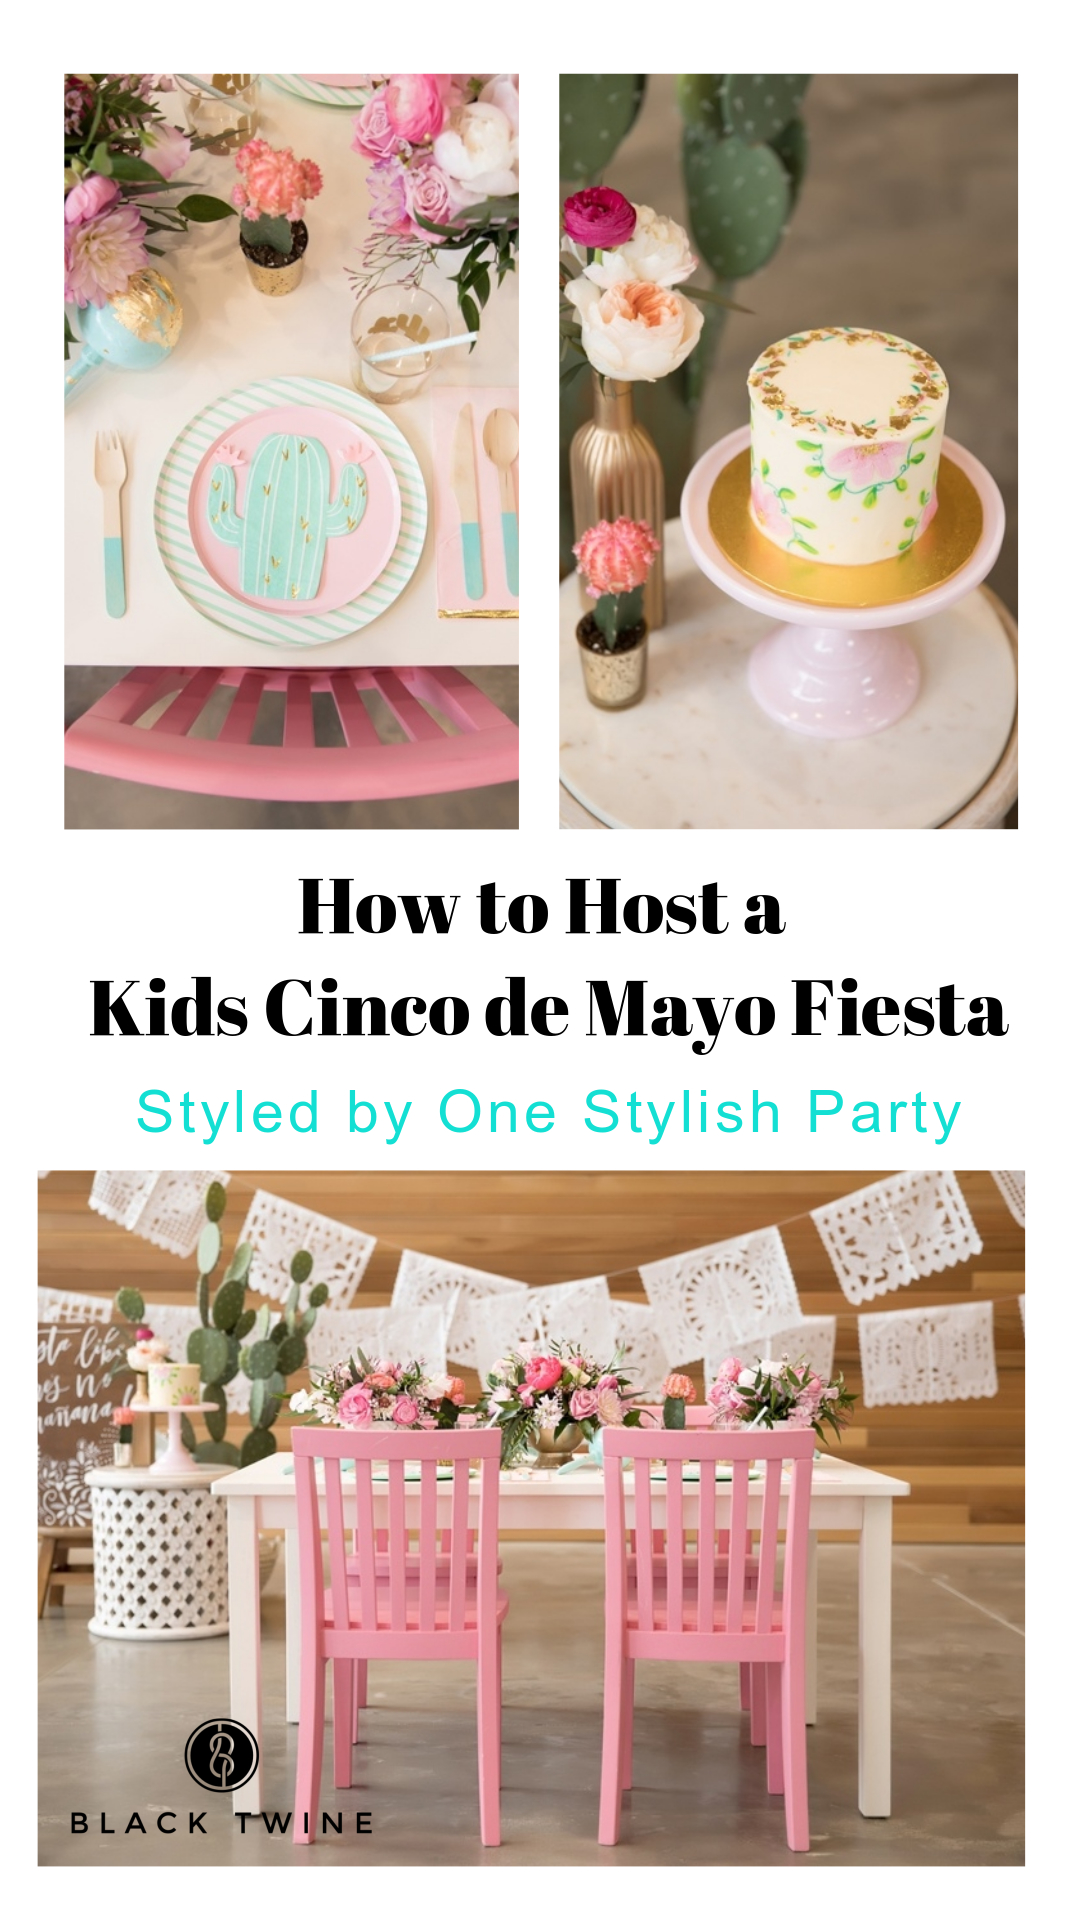 How to Host a Kids Cinco de Mayo Party Fiesta by One Stylish Party | Black Twine